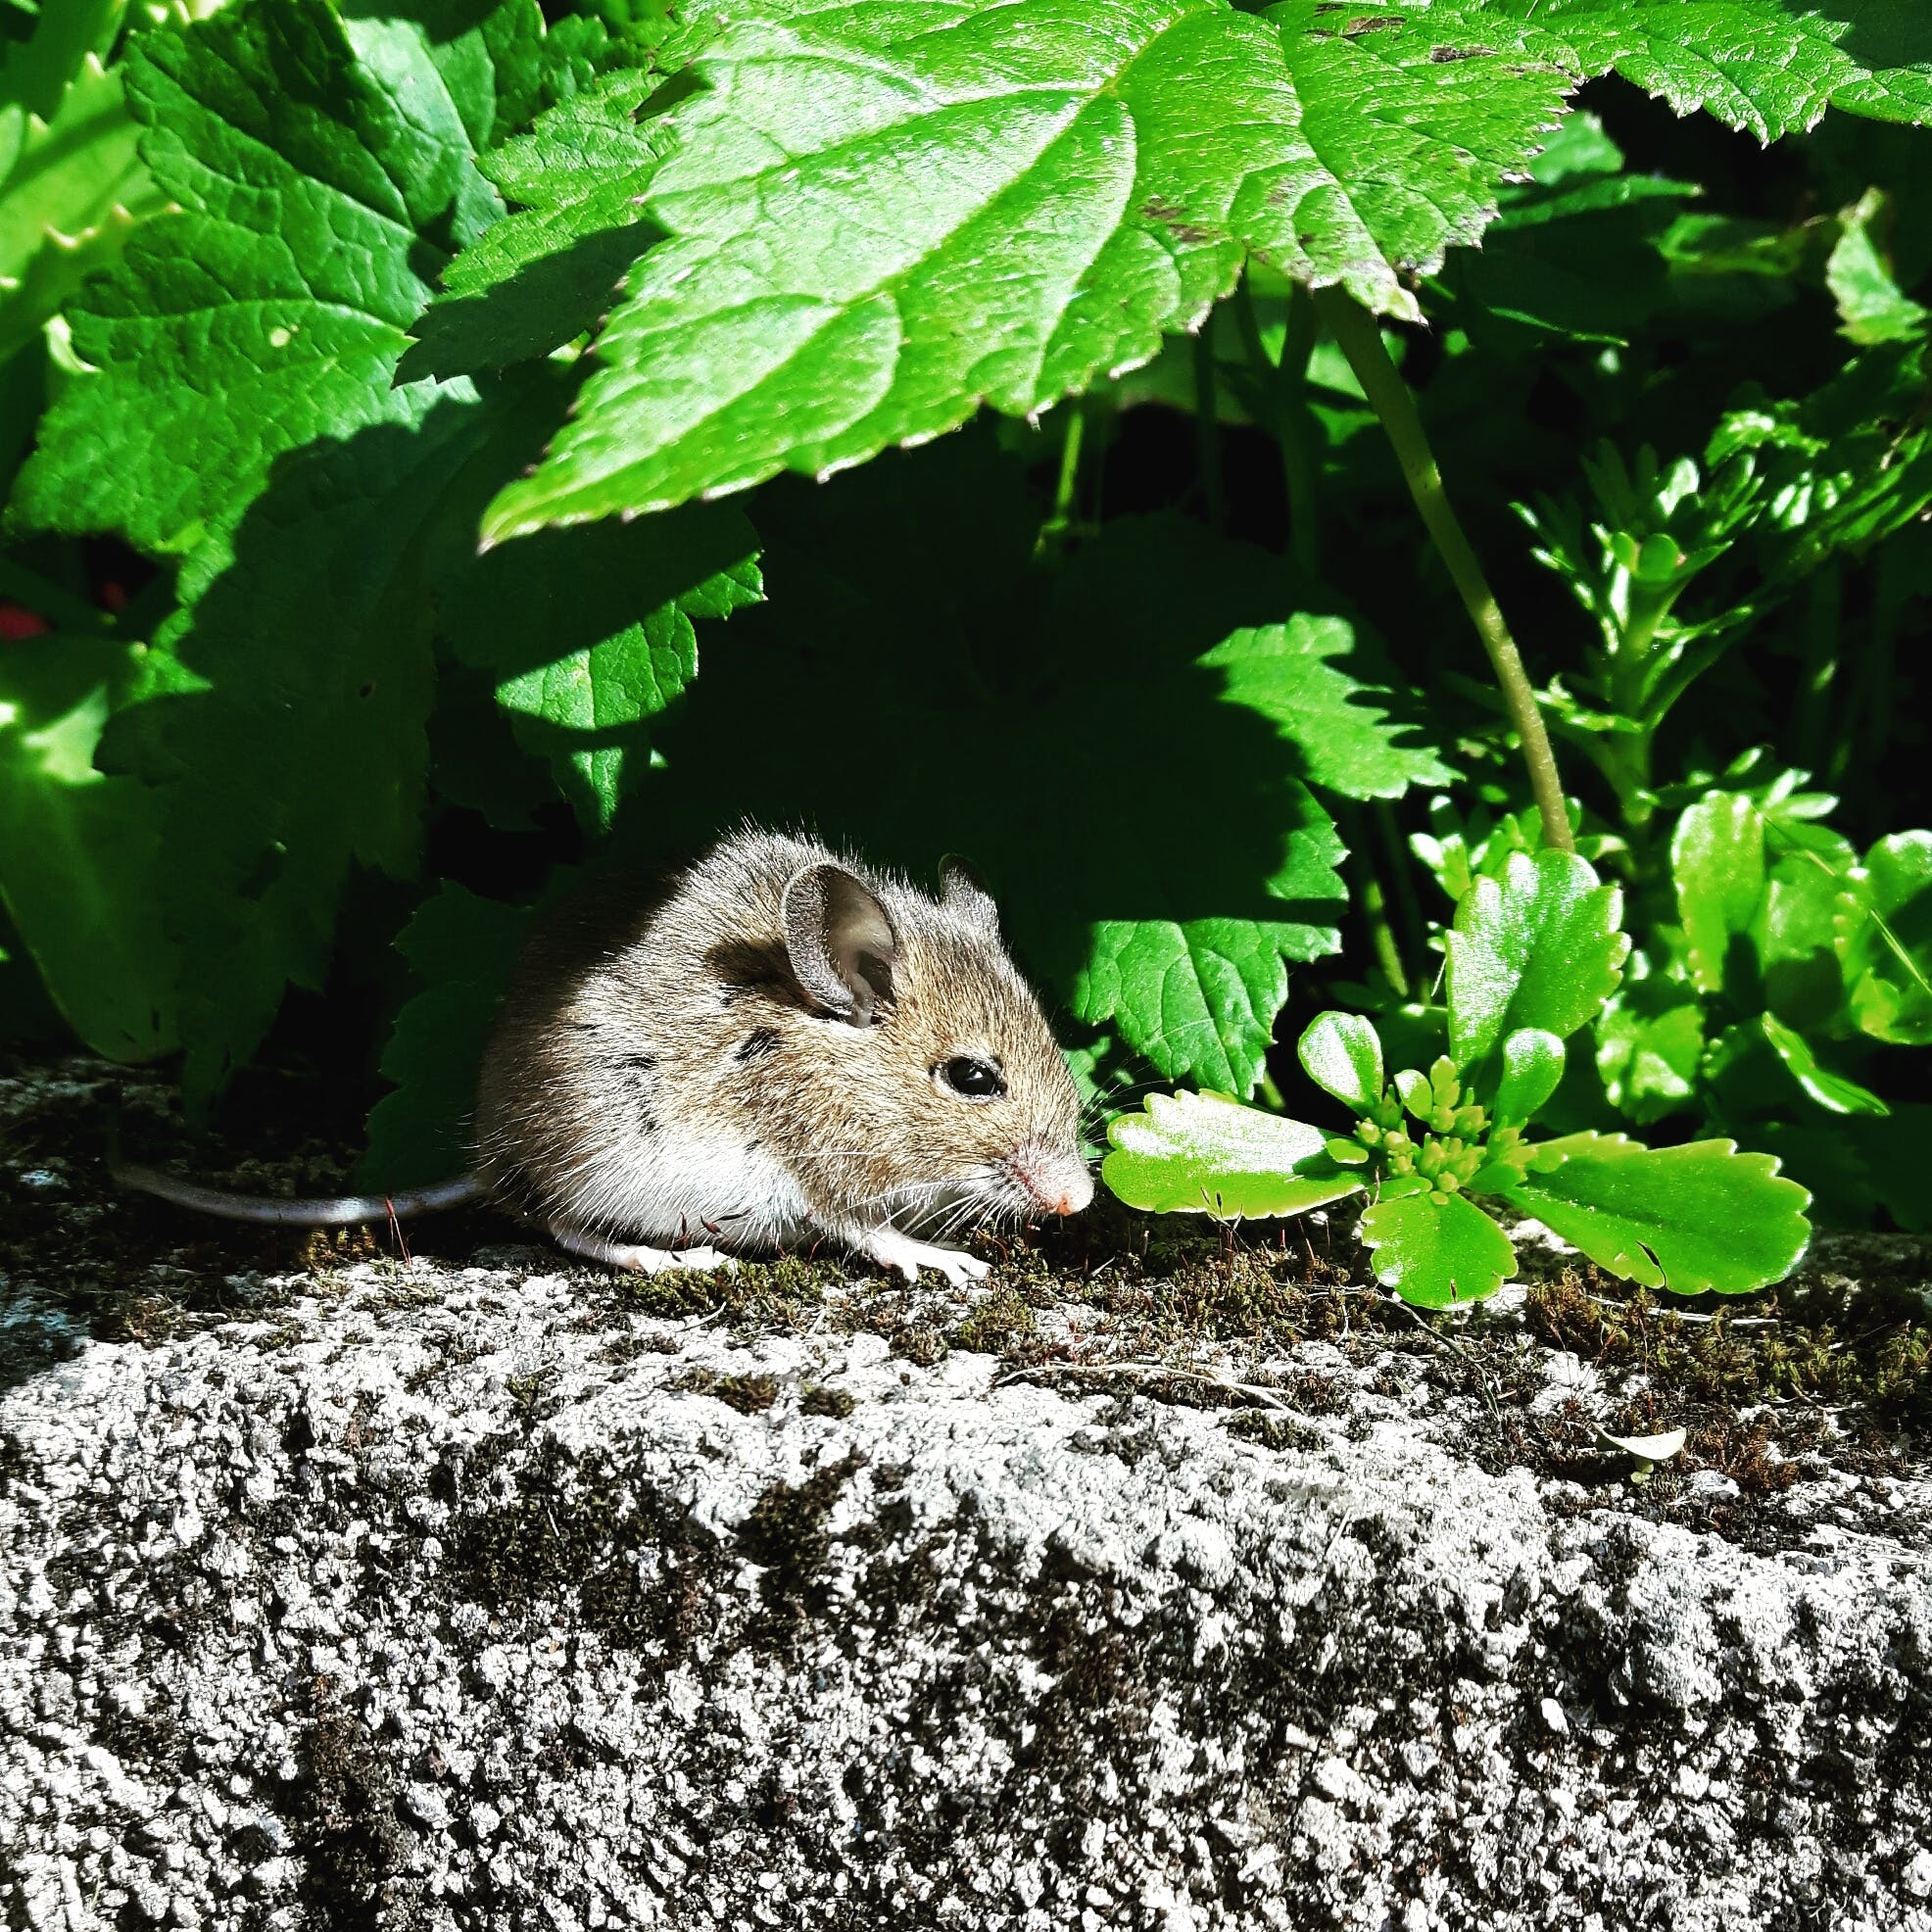 Brown Rat on Gray Concrete Structure Near Green Green Leafed Plants